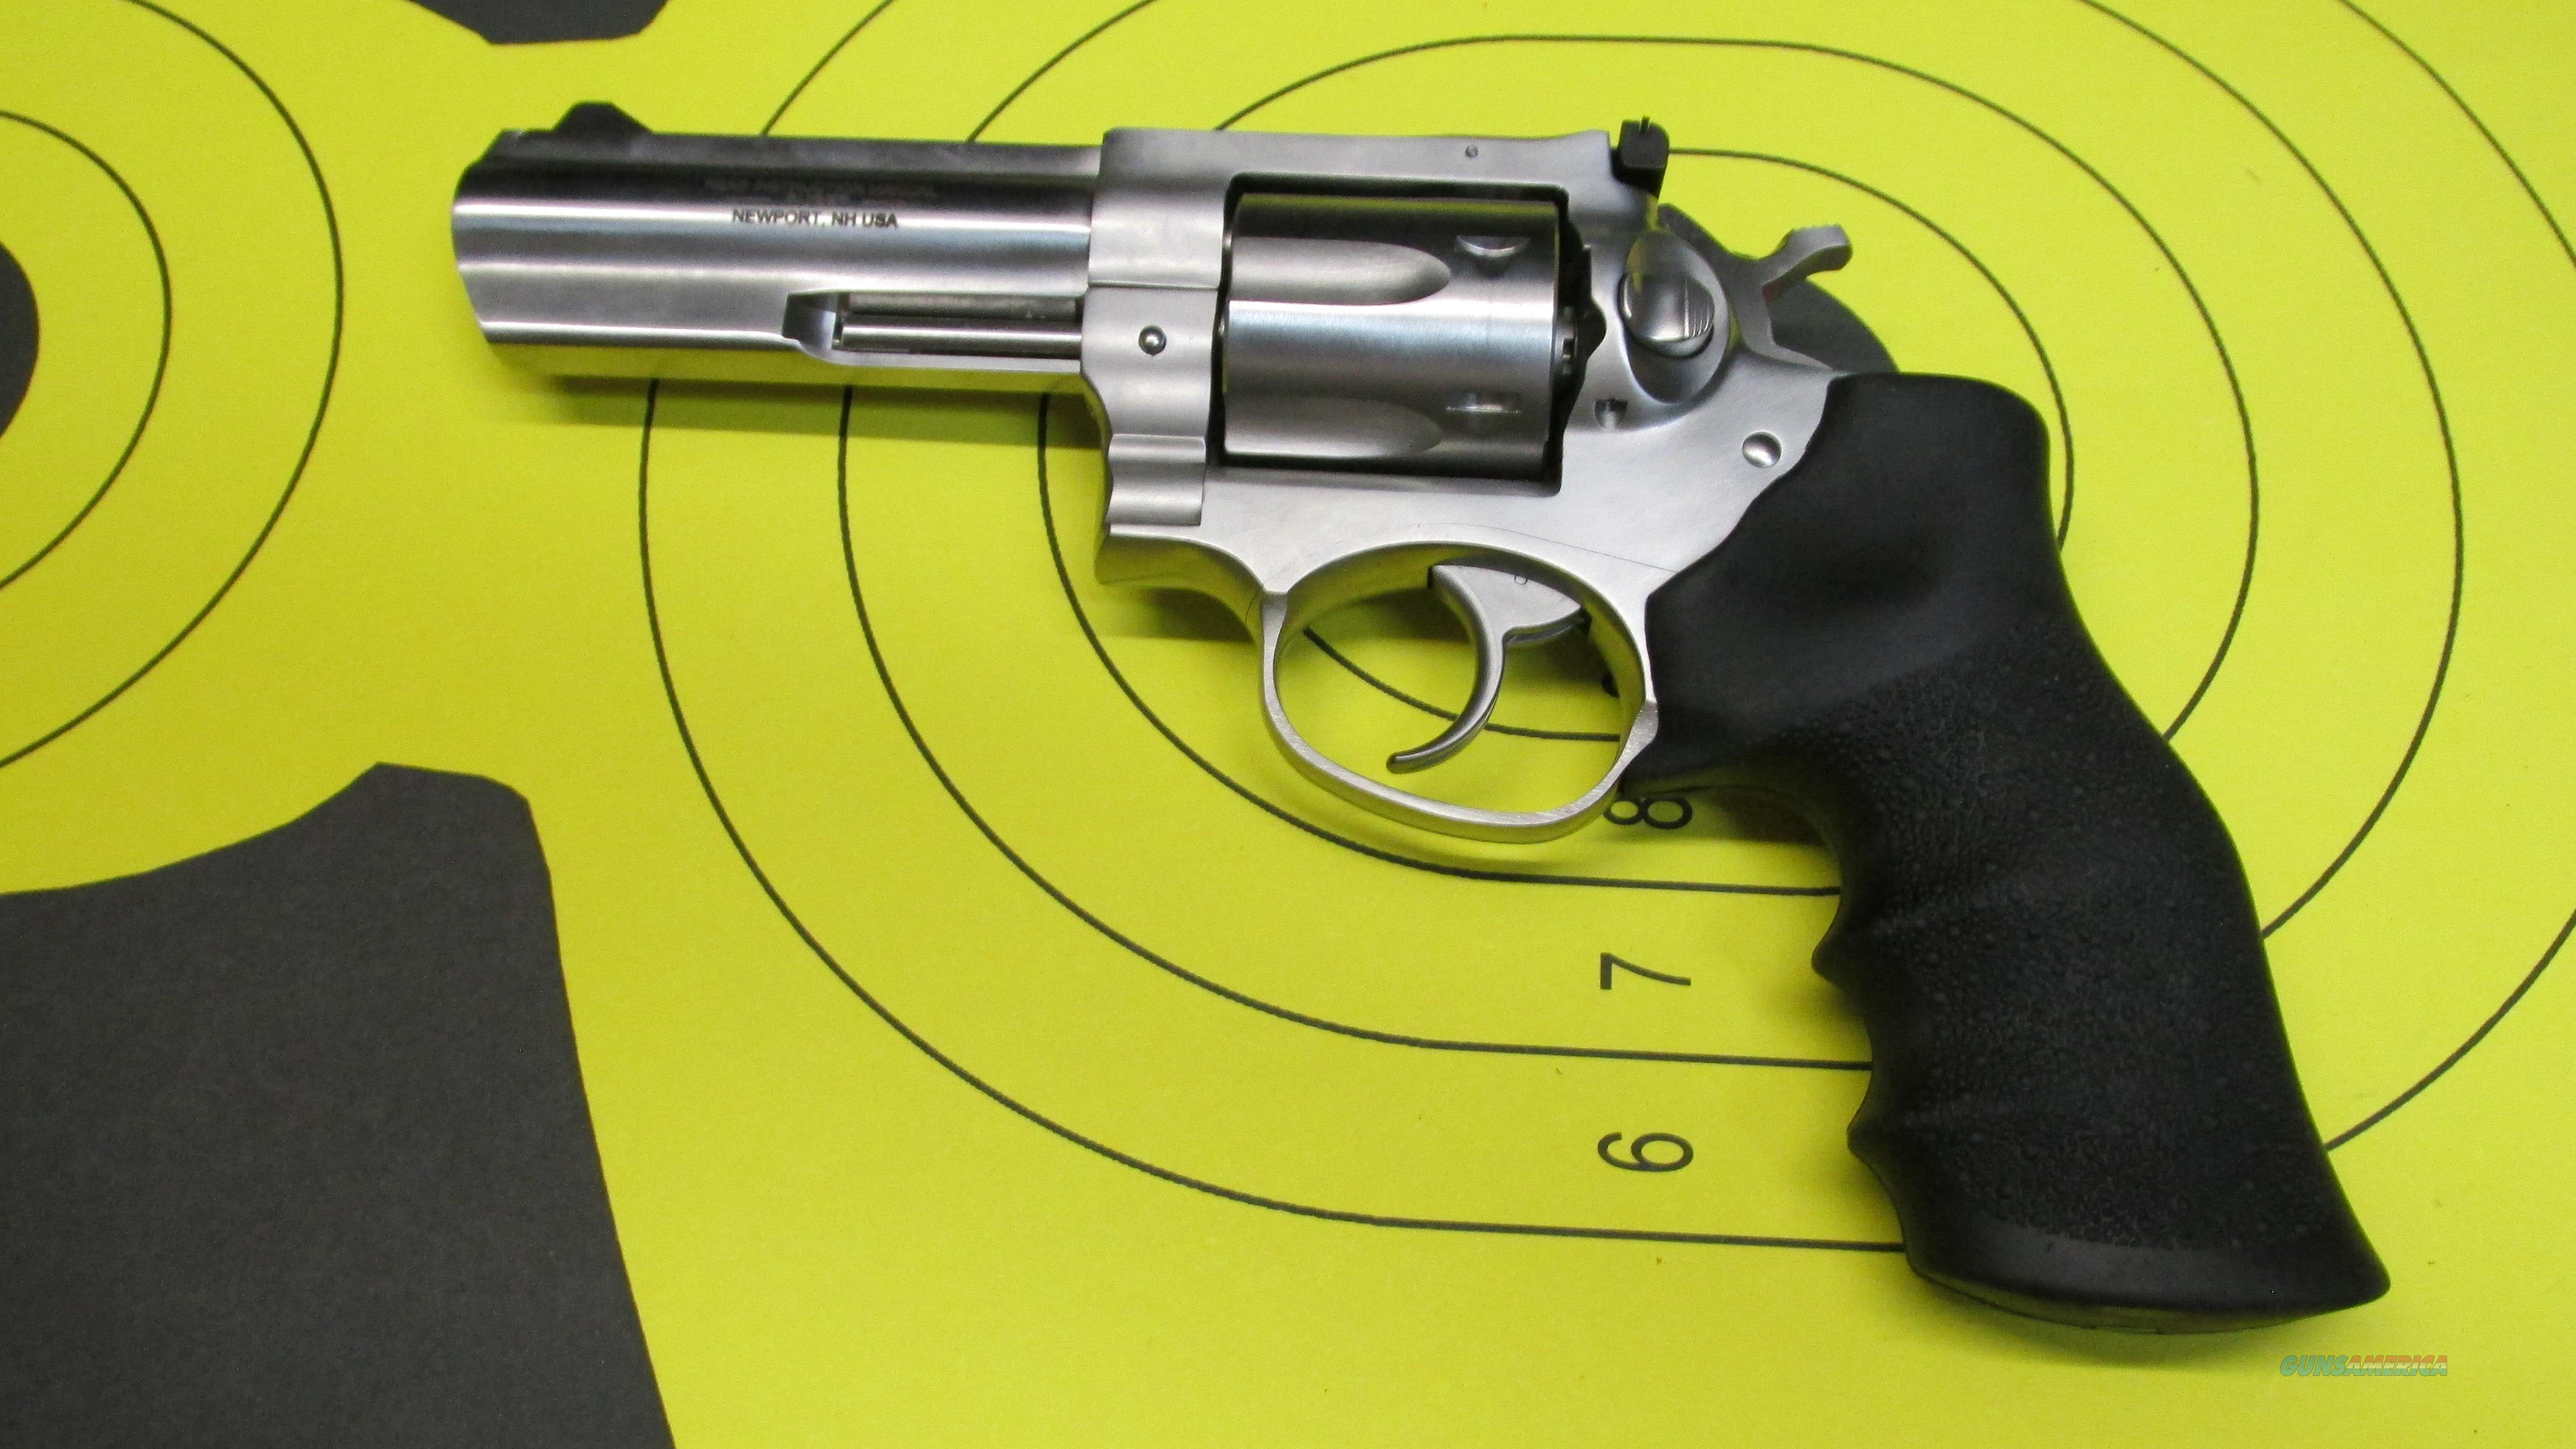 "RUGER GP100 .357 MAGNUM 4"" BARREL 6 SHOT REVOLVER  Guns > Pistols > Ruger Double Action Revolver > GP100"